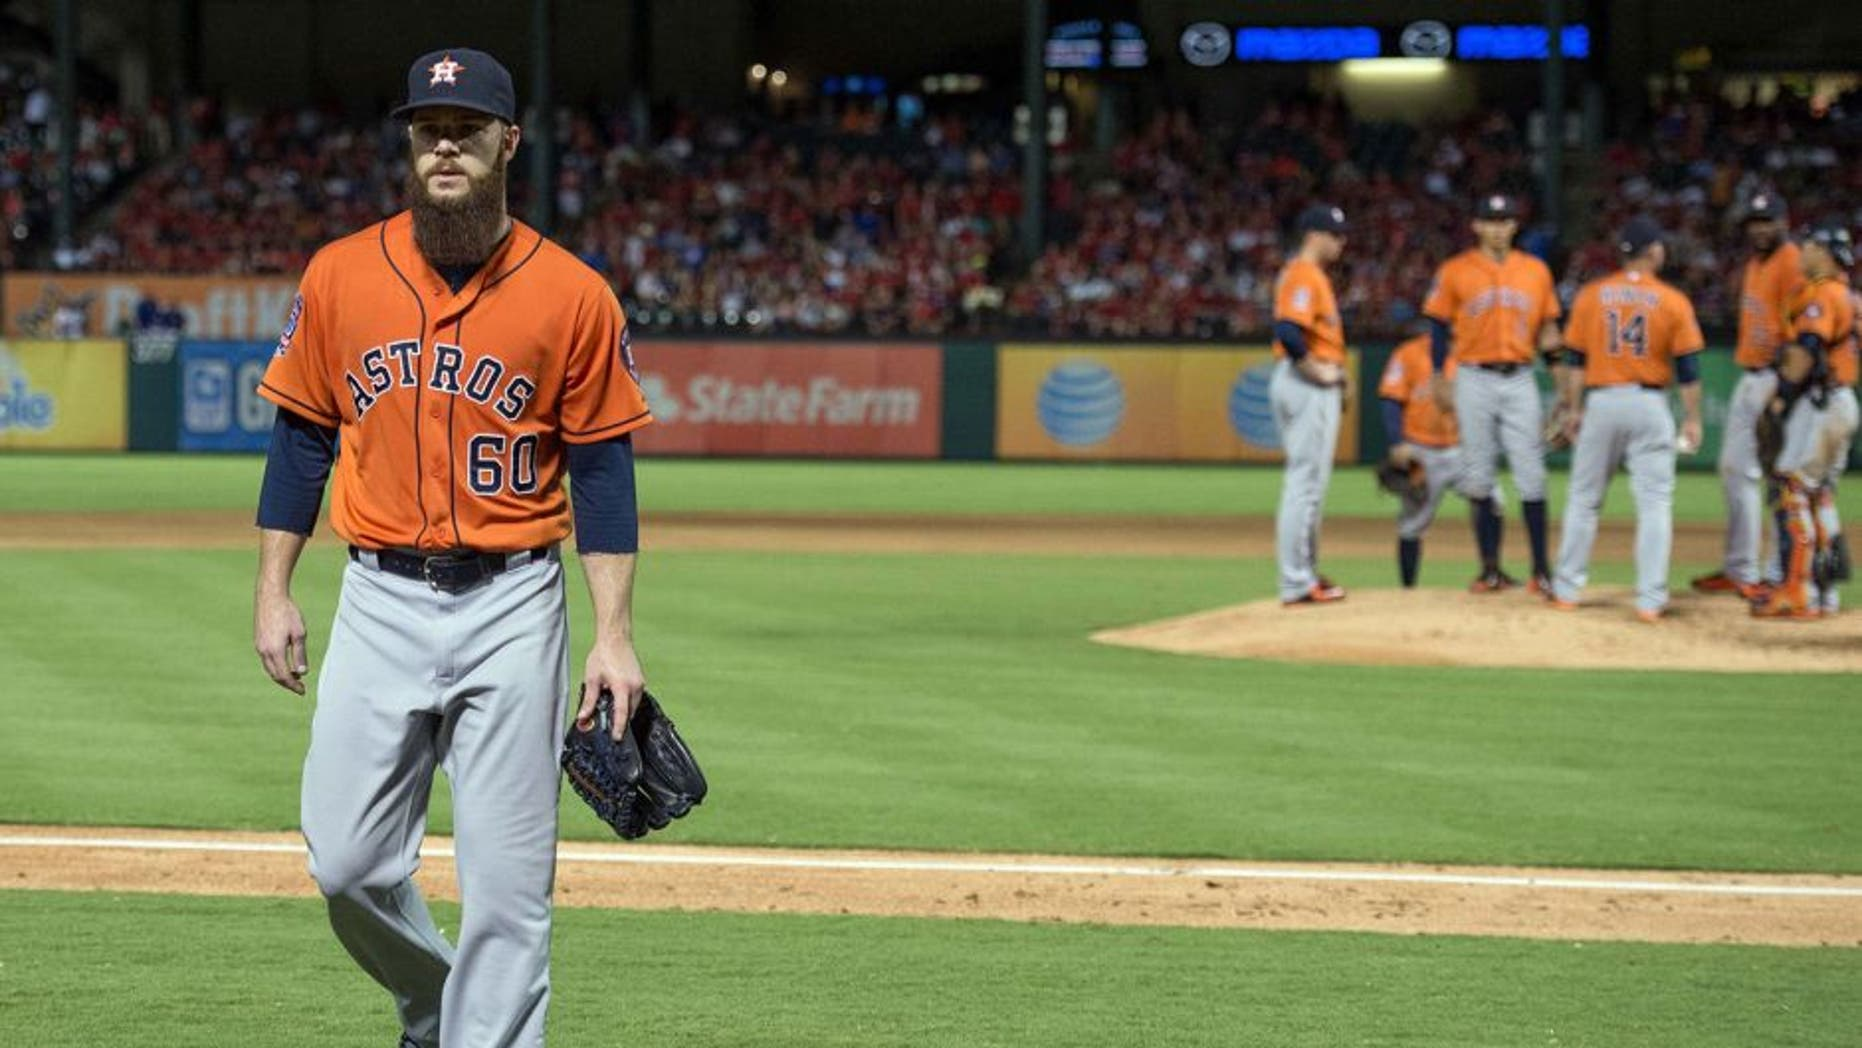 Sep 16, 2015; Arlington, TX, USA; Houston Astros starting pitcher Dallas Keuchel (60) leaves the game during the fifth inning against the Texas Rangers at Globe Life Park in Arlington. The Rangers defeat the Astros 14-3. Mandatory Credit: Jerome Miron-USA TODAY Sports